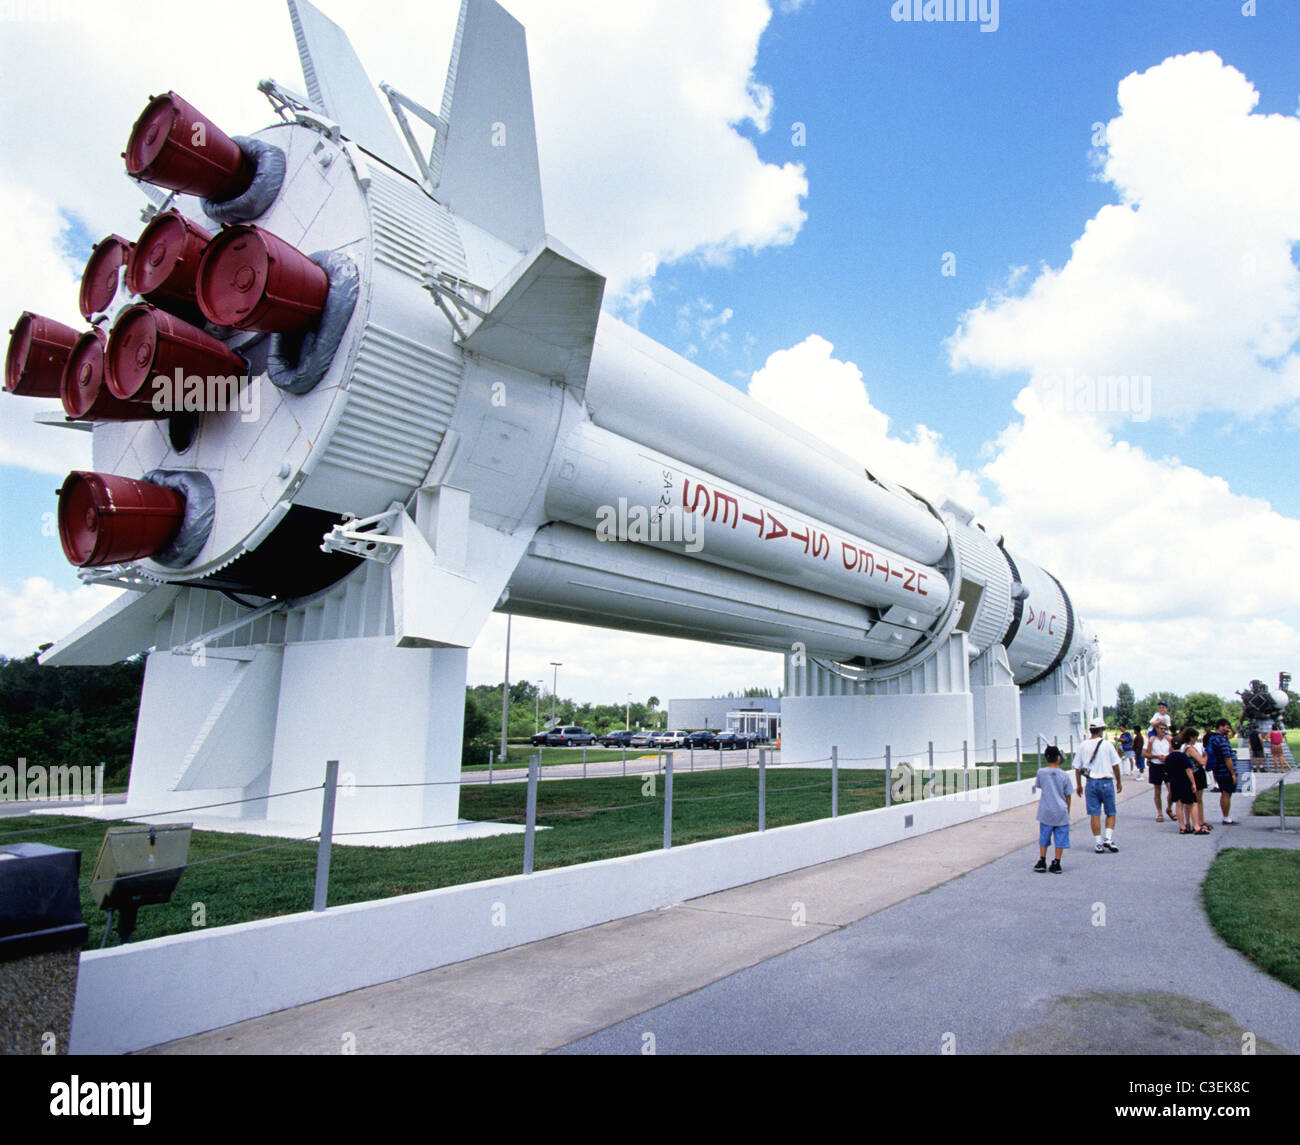 A Saturn 1B rocket in the NASA Rocket Garden at the Kennedy Space Center Centre in Florida - Stock Image